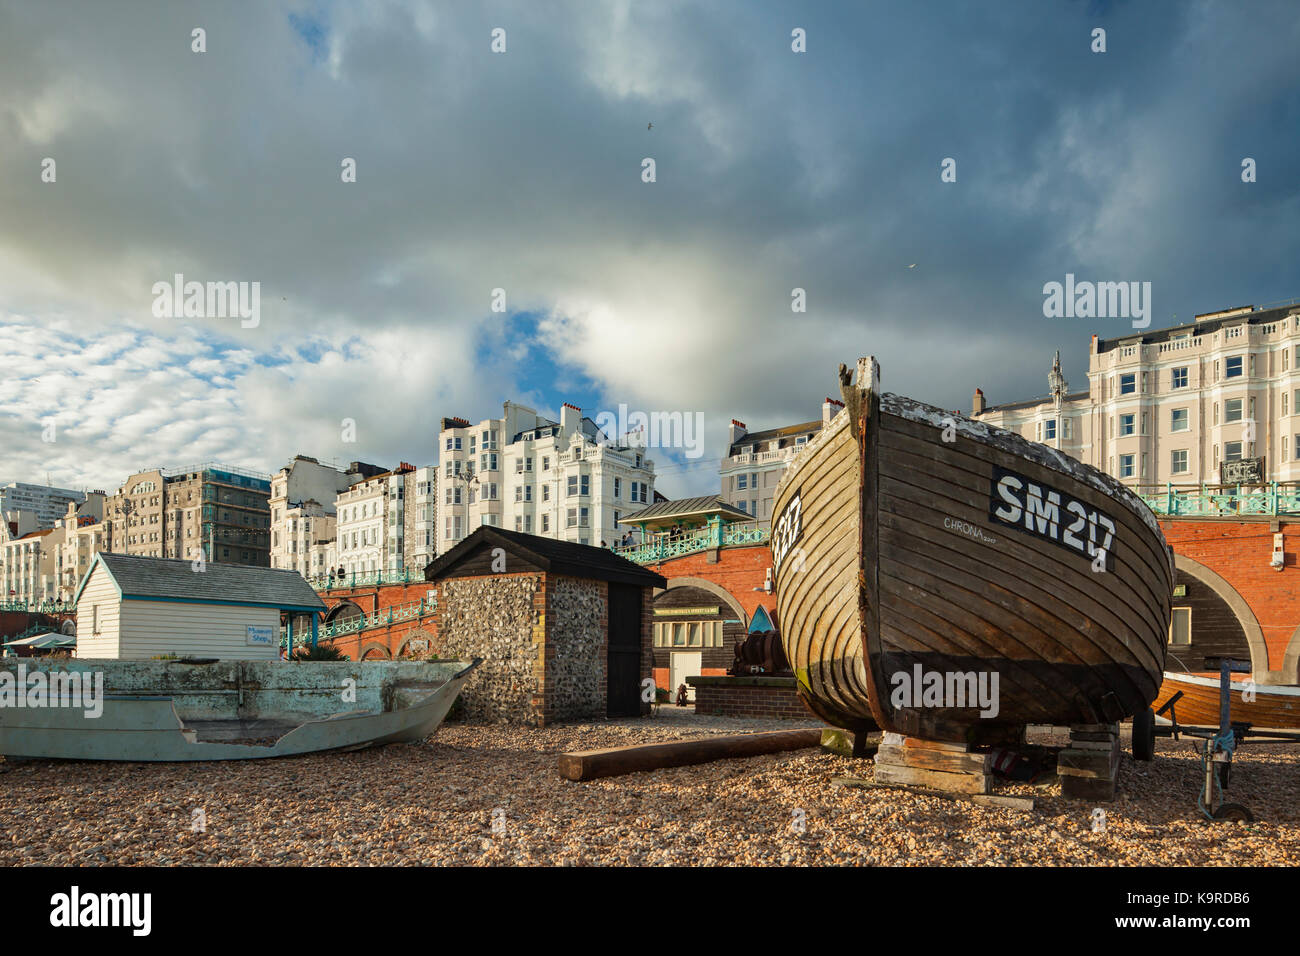 Afternoon on Brighton beach, East Sussex, England. Stock Photo